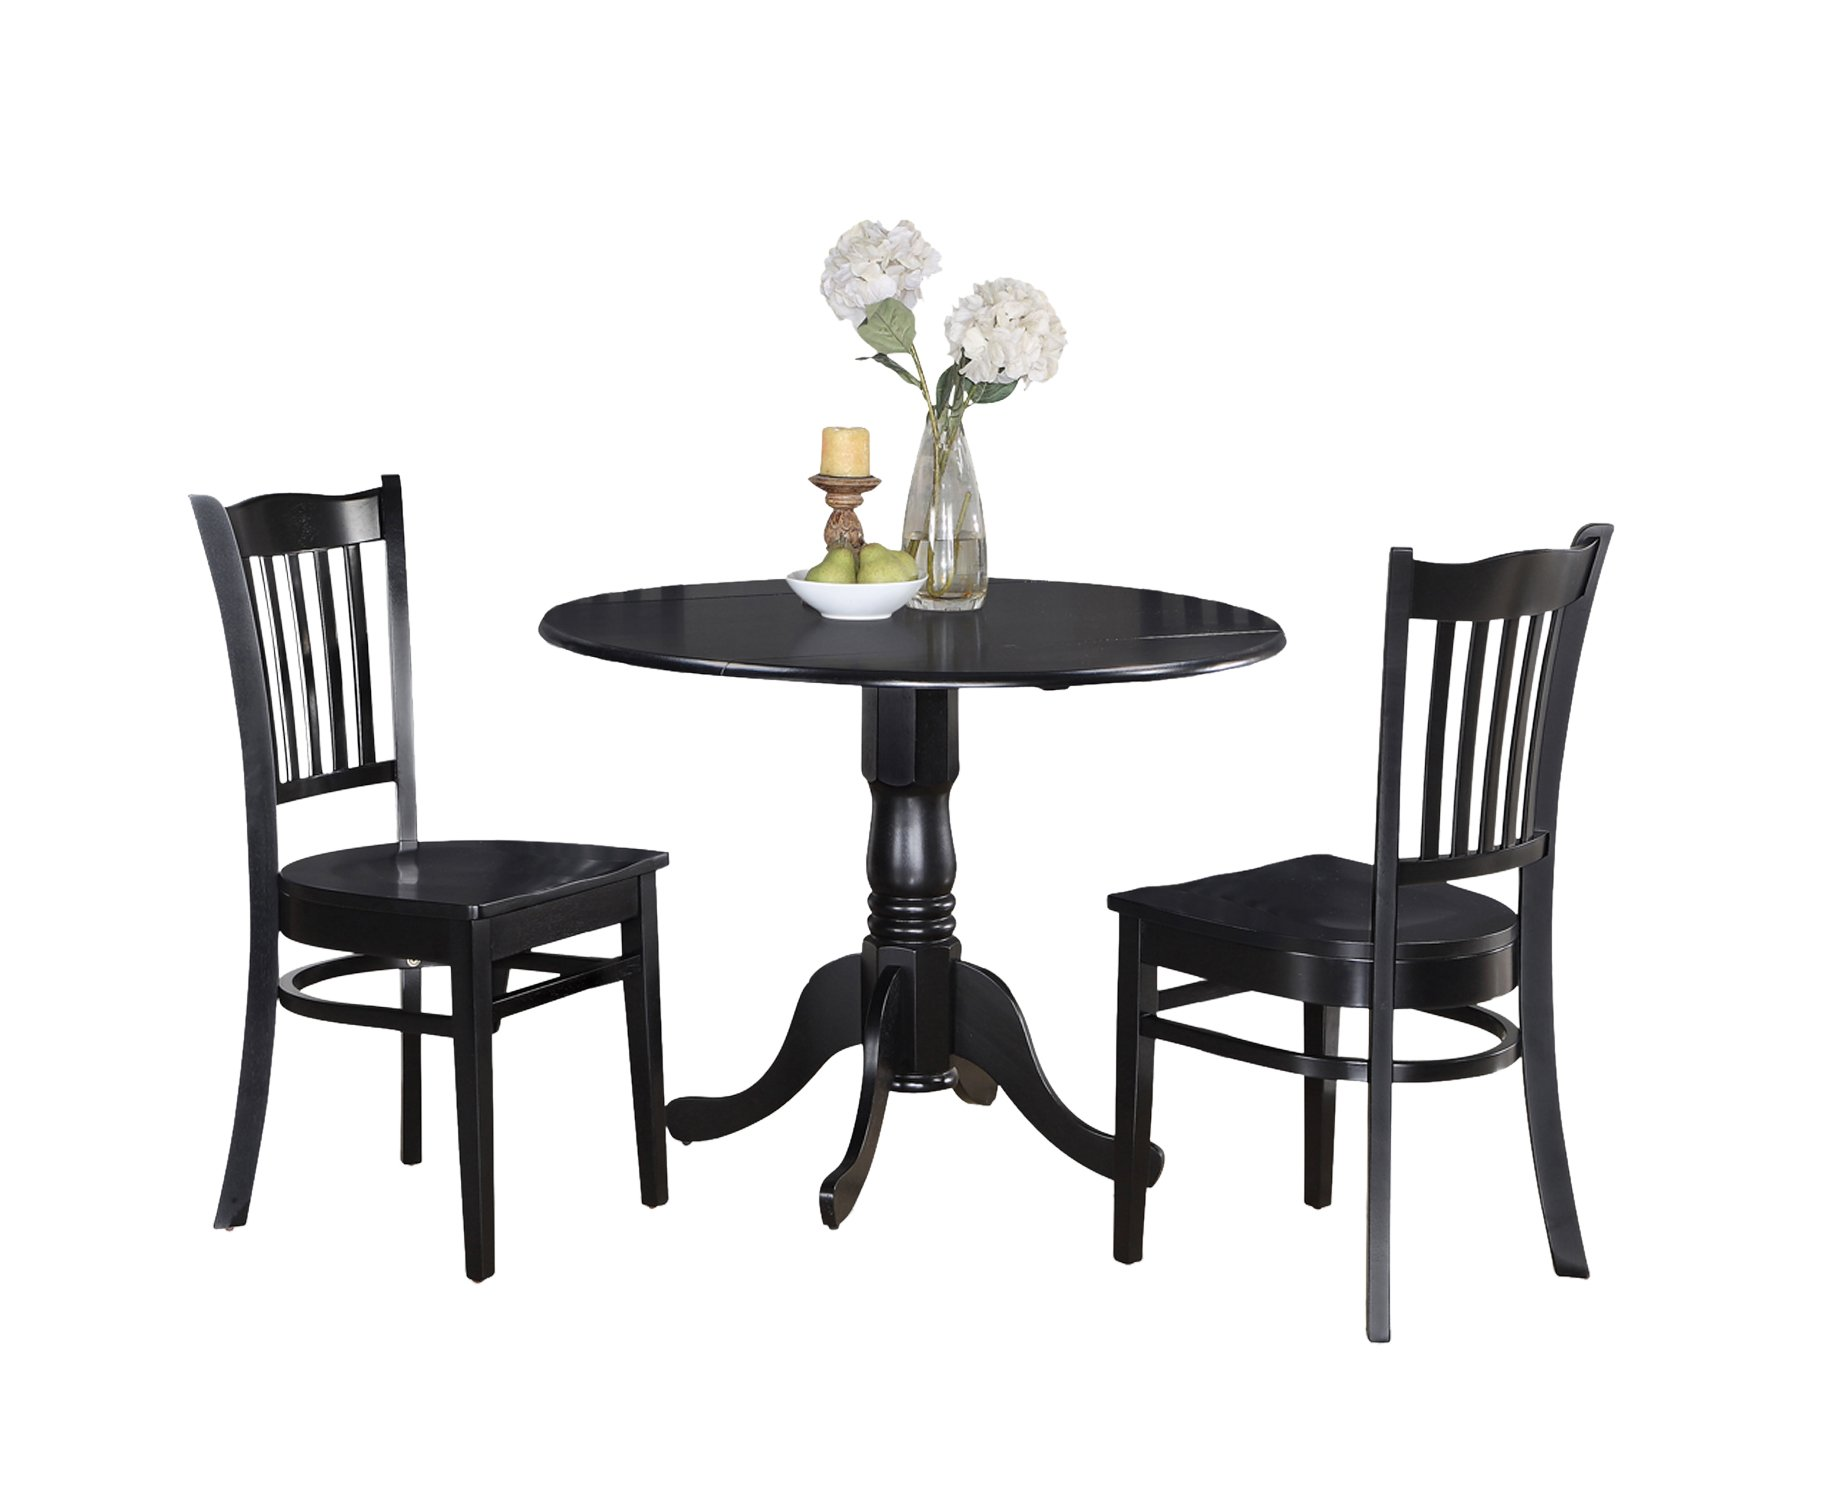 East West Furniture DLGR3-BLK-W 3-Piece Kitchen Table and Chairs Set, Black Finish